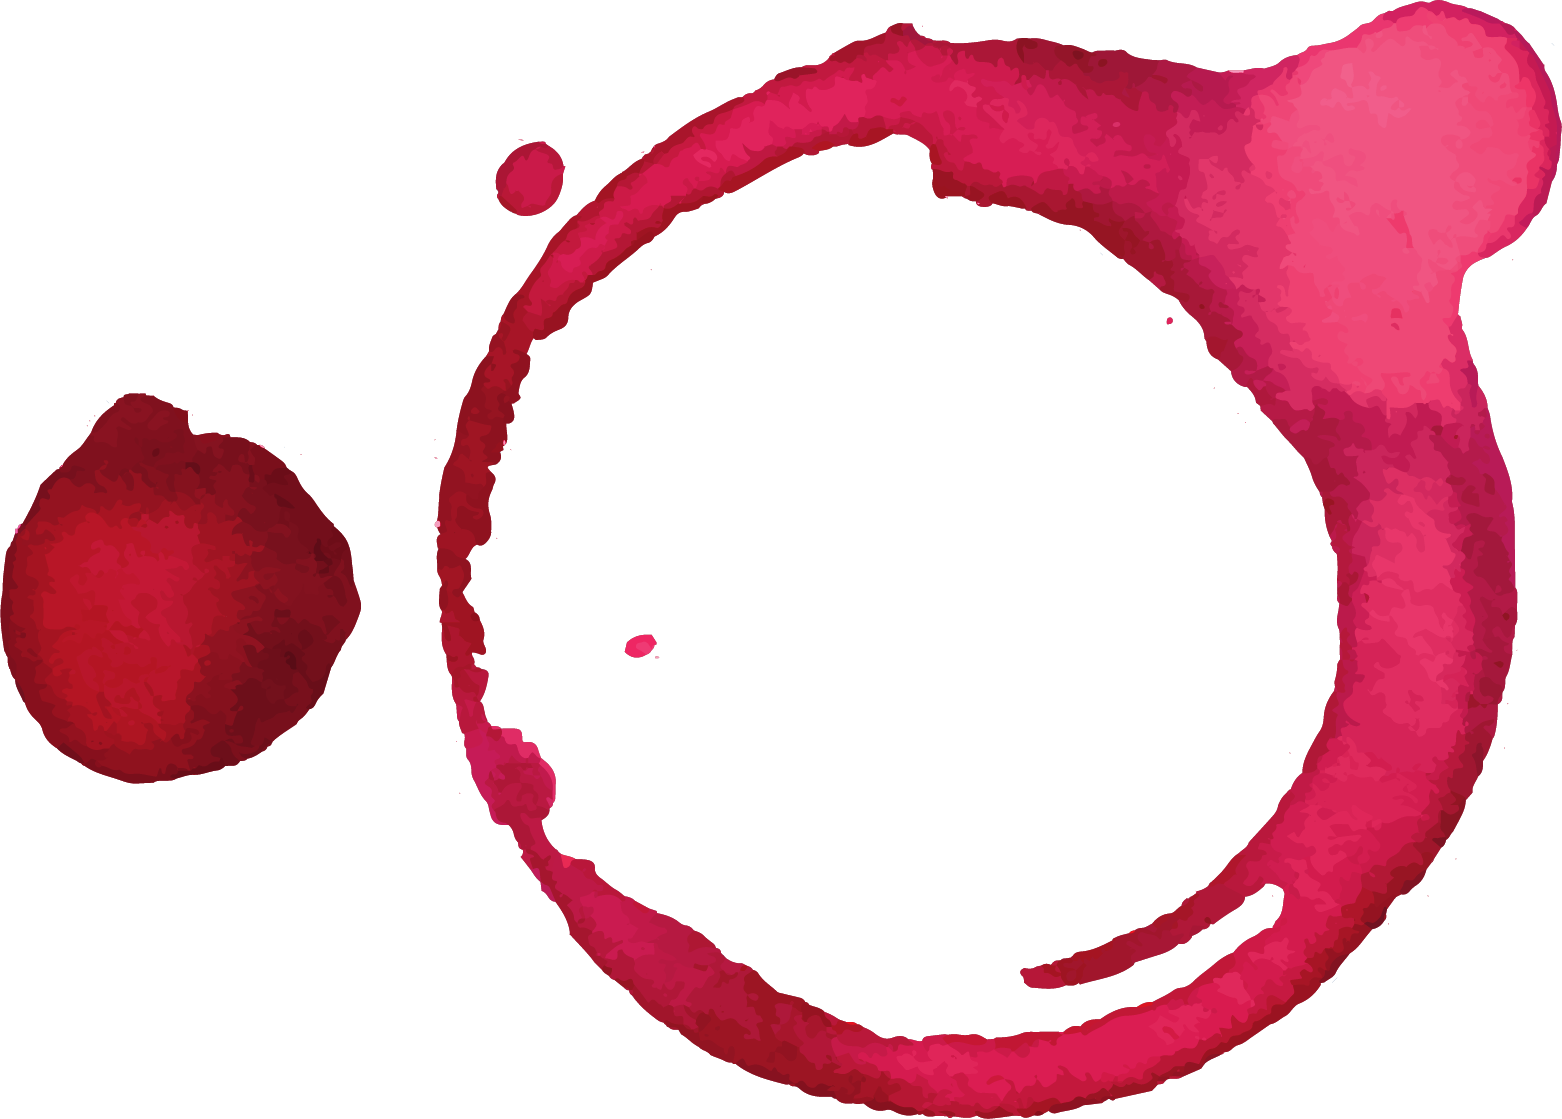 kisspng-red-wine-stain-paint-vector-hand-painted-red-wine-stains-5a702a55561541.6329225615173003093526